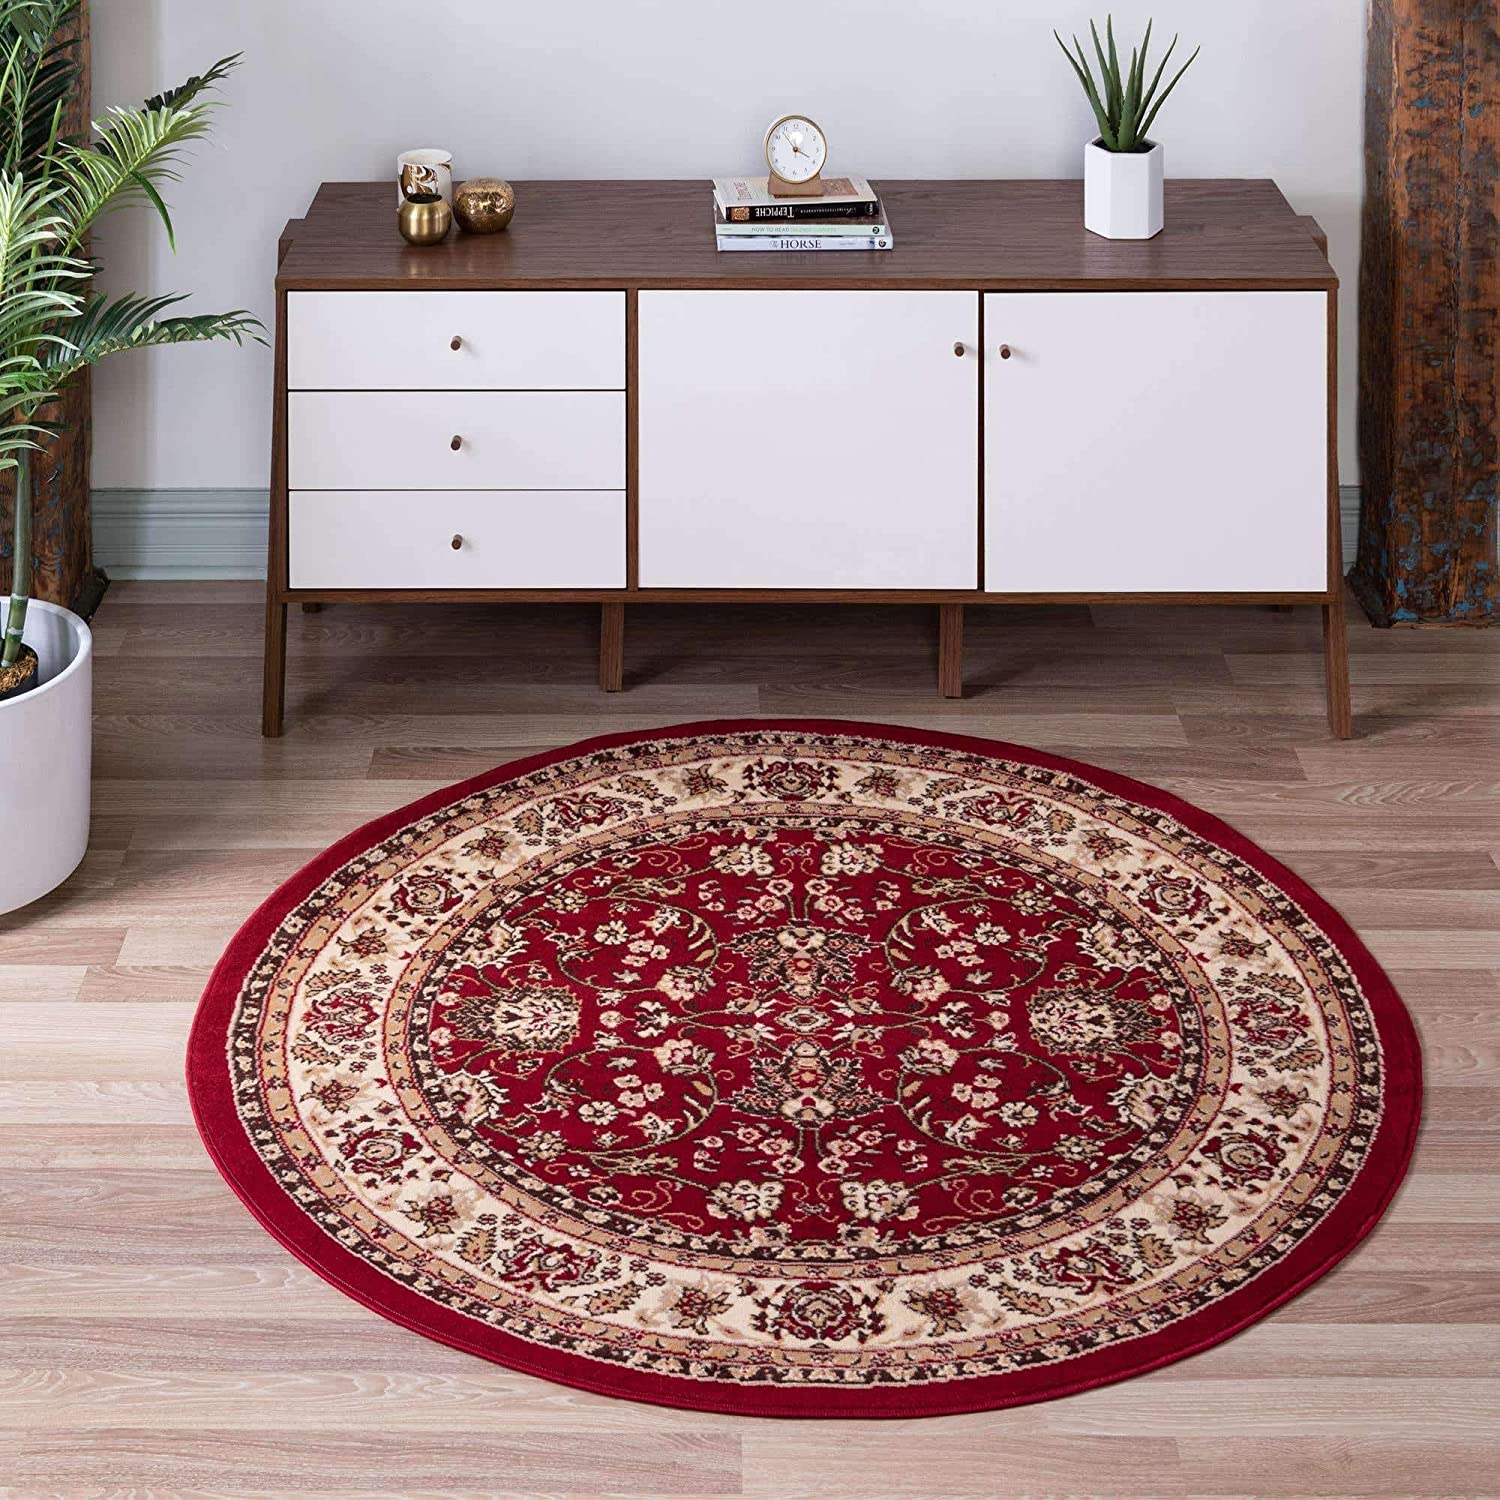 Unique Loom Kashan Traditional Floral Overall Pattern with Border Rug_KAS003, 5 Feet, Burgundy/Ivory